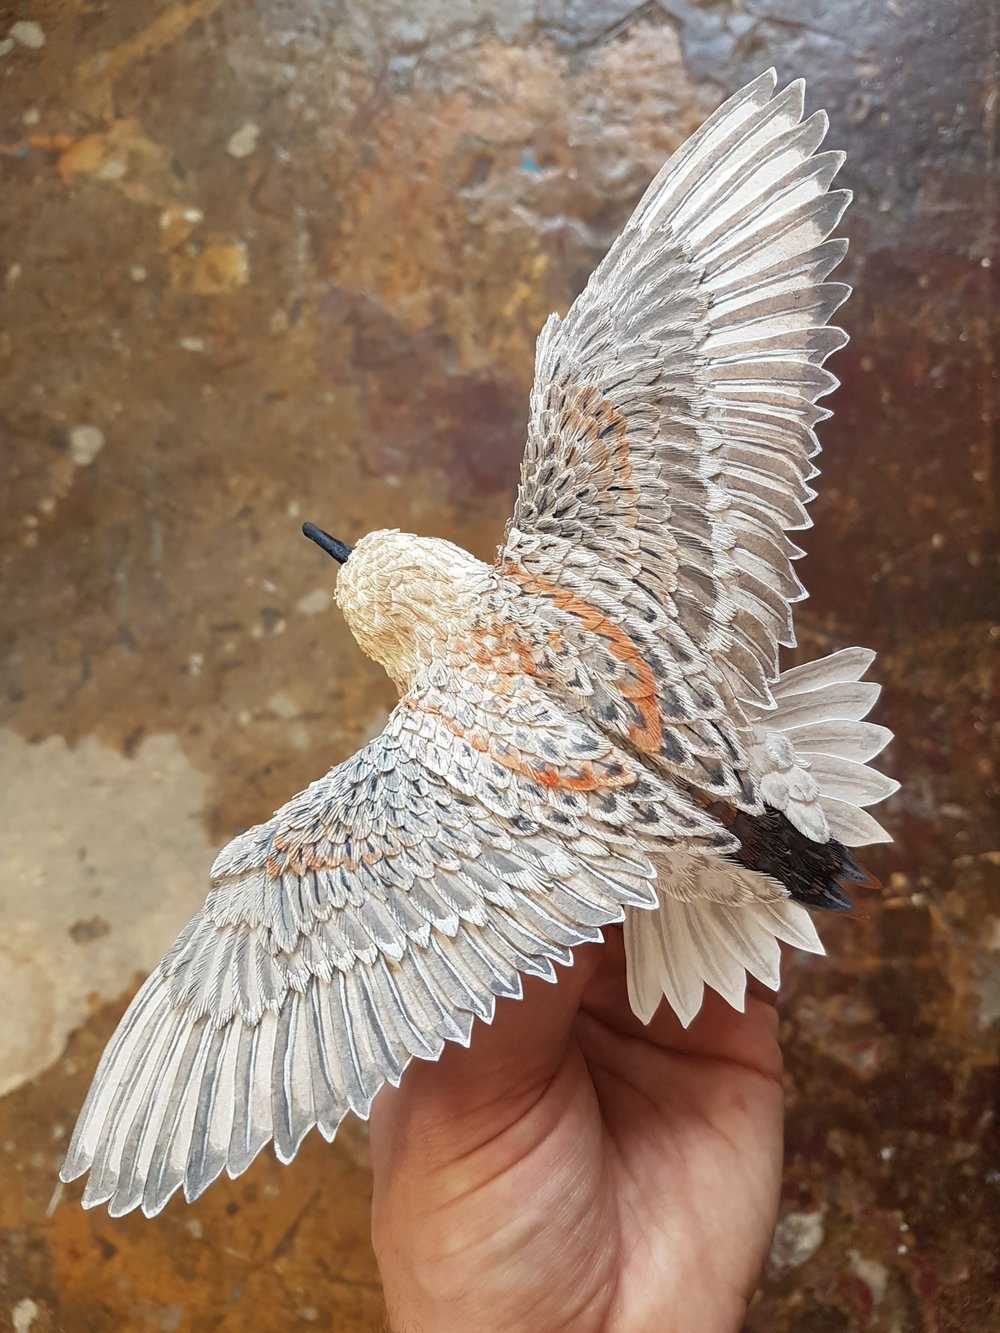 PAPER BIRD SCULPTURES WITH ZACK MCLAUGHLIN   Join visiting artist Zack Mclaughlin of Paper & Wood Co. for workshops to learn to build his intricate paper bird sculptures. No experience needed!  Register and pay for these workshops here.